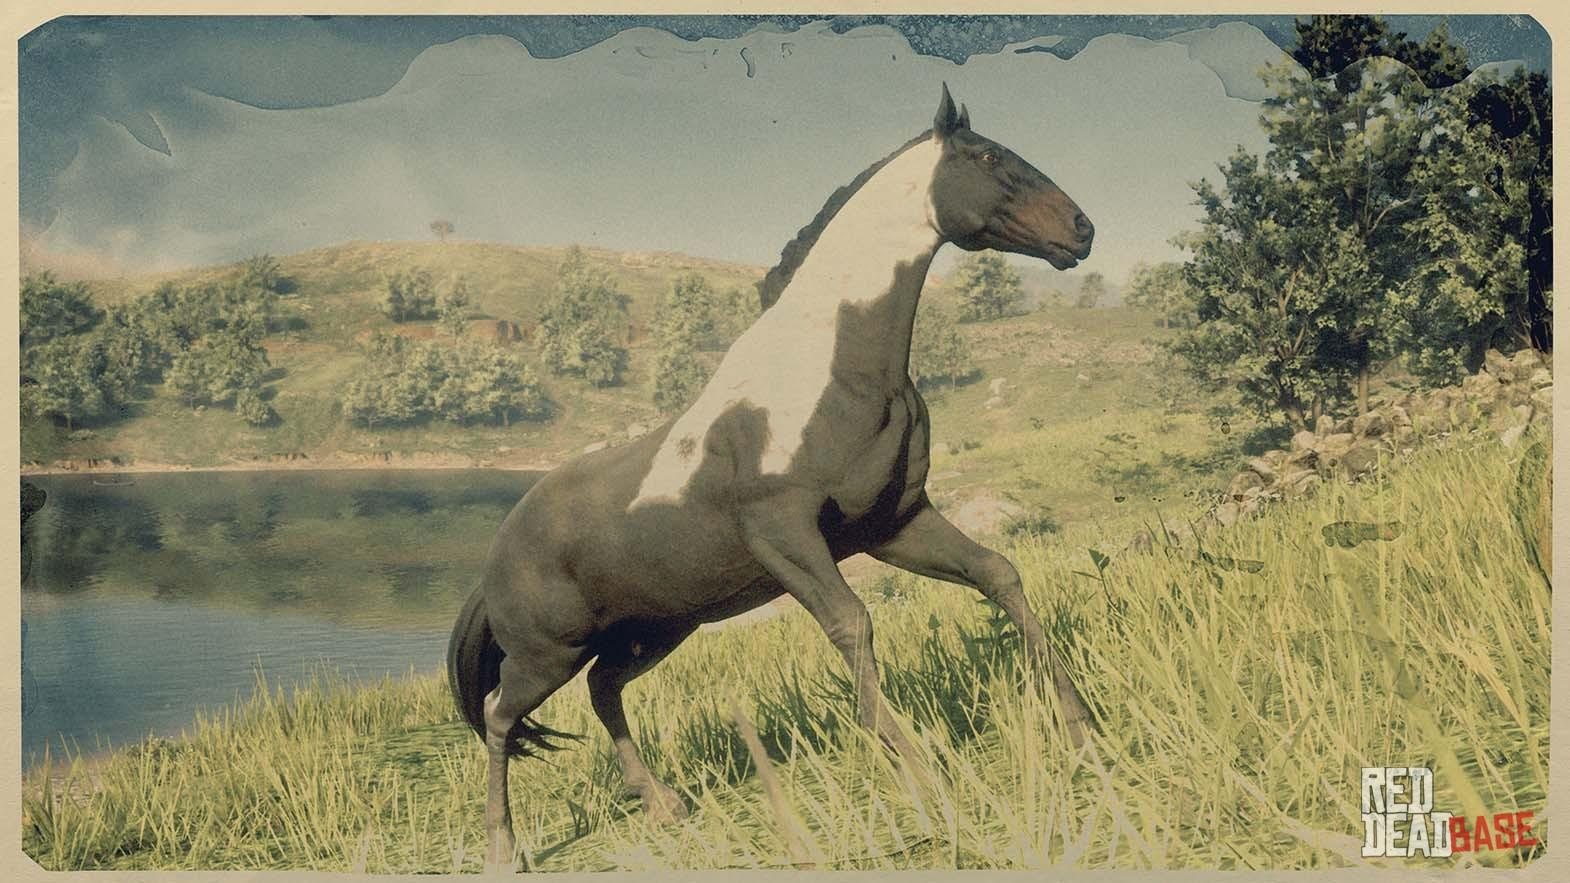 Hungarian Halfbred Red Dead Redemption 2 Horse Breeds Guide Red Dead Redemption 2 Animals Species Wildlife Database Red Dead Redemption 2